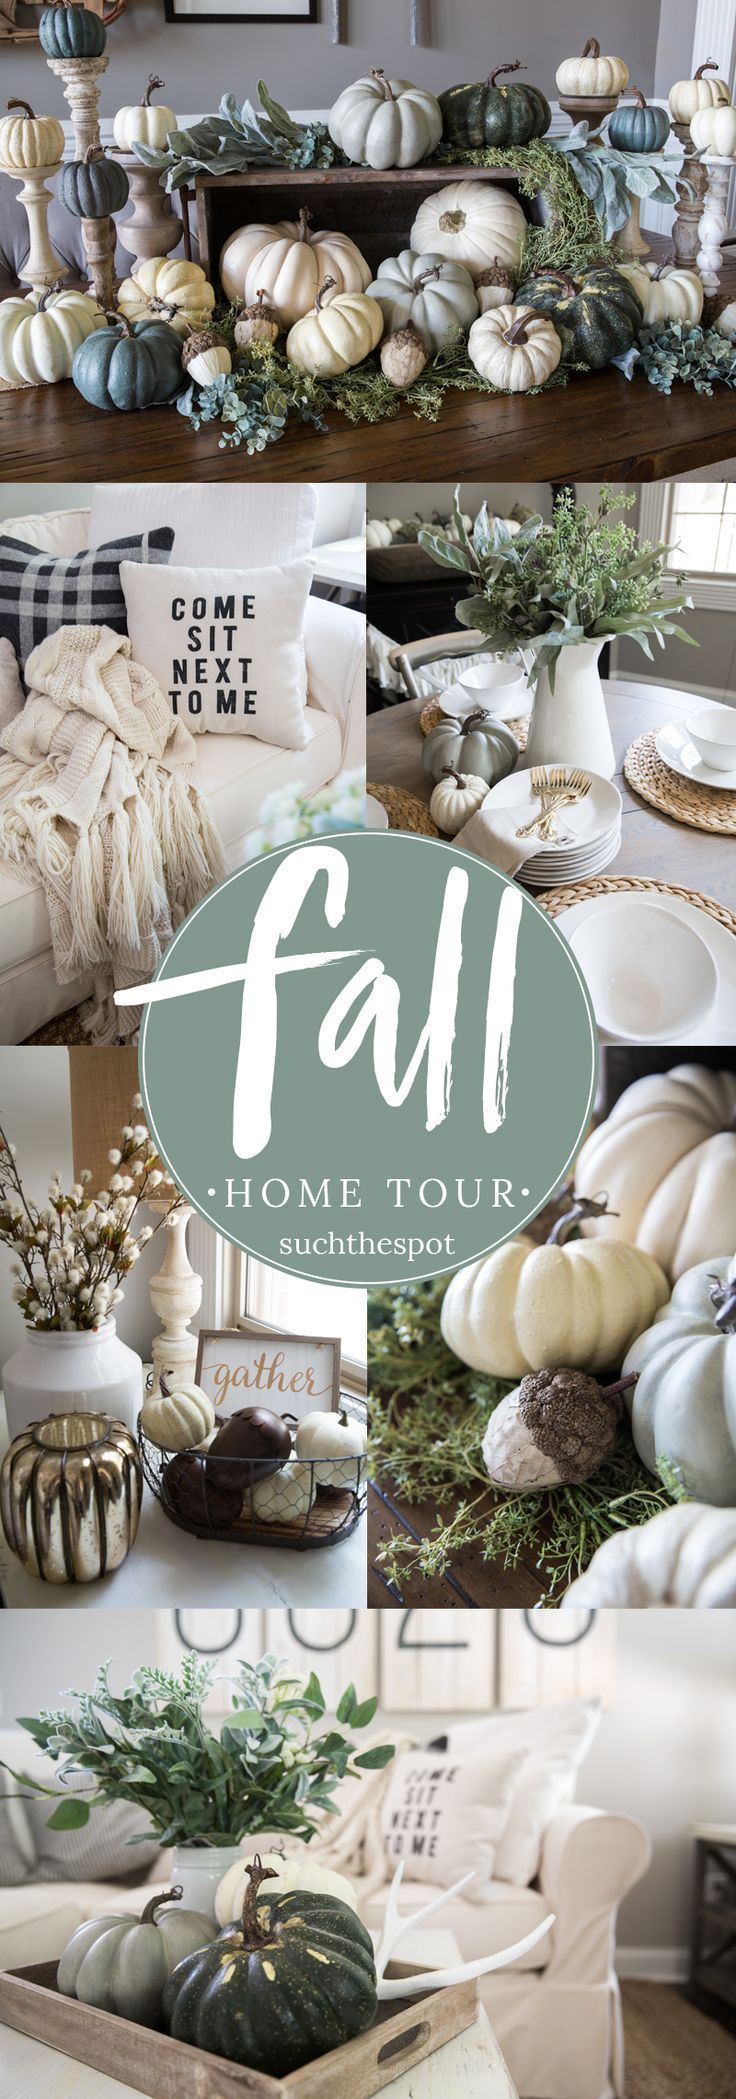 Photo of Fall Decor Ideas and Inspiration for Using Neutral Colors | Fall Home Tour